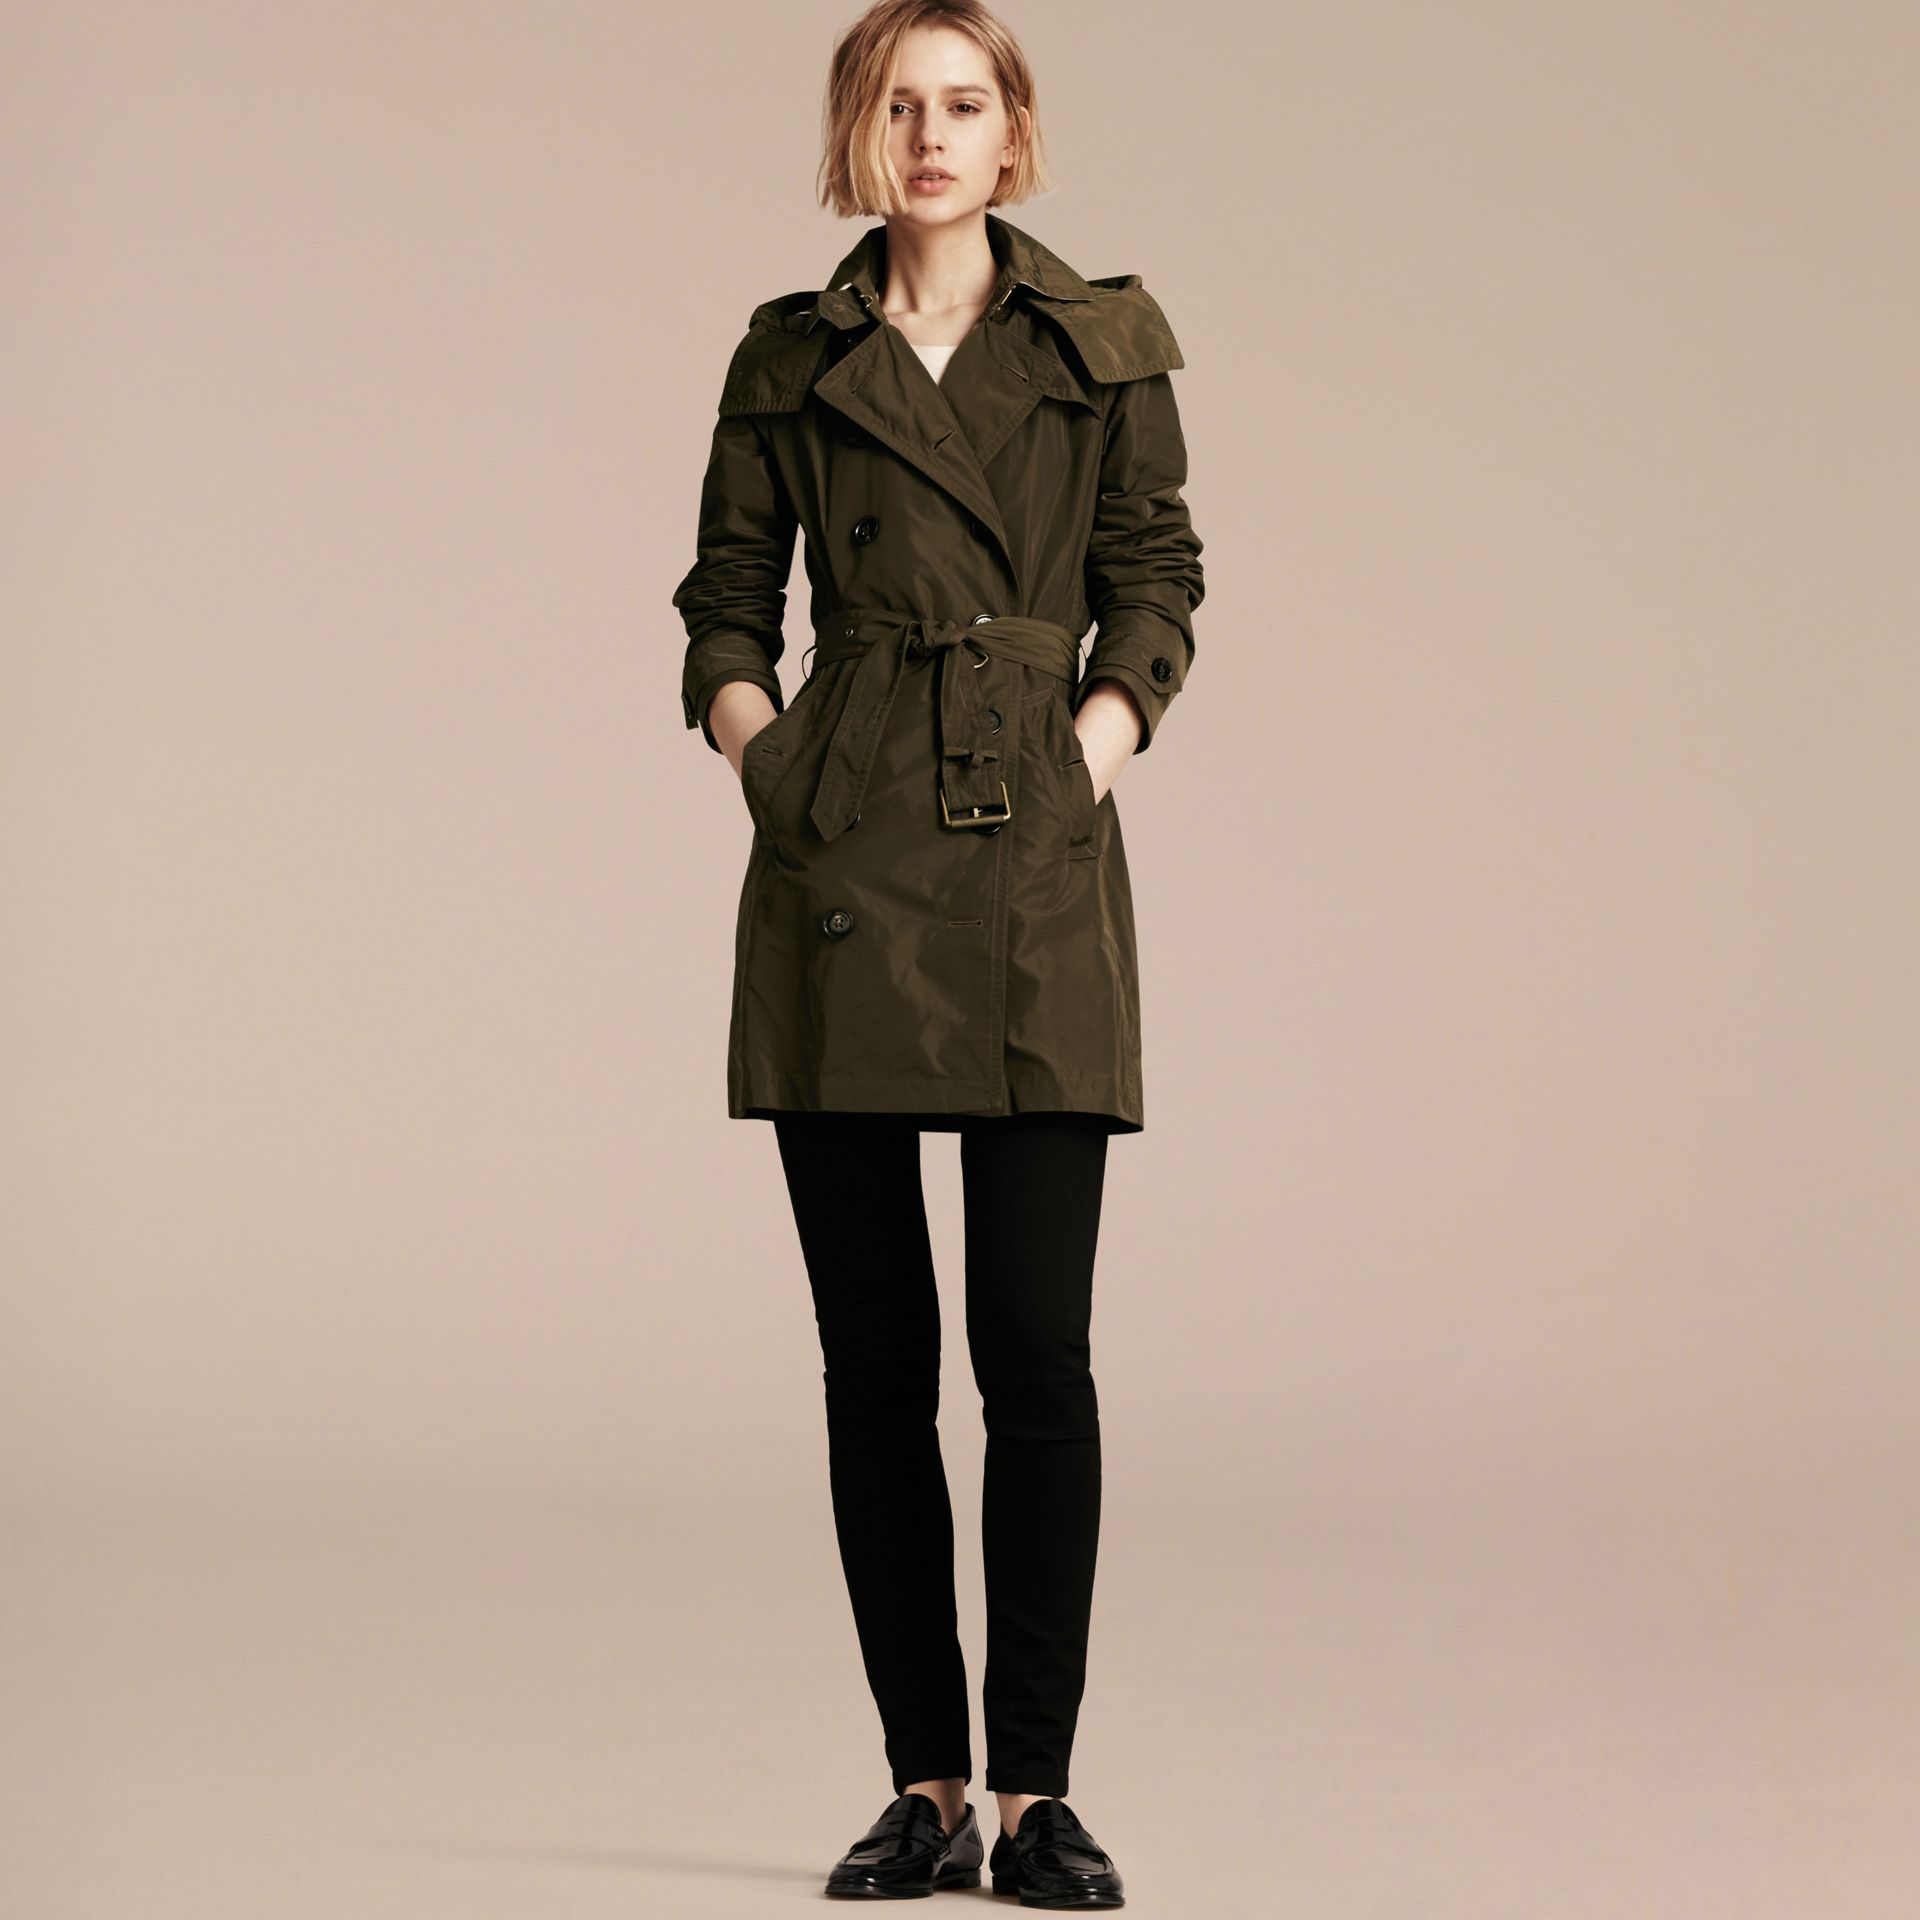 Taffeta Trench Coat with Detachable Hood in Dark Olive - Women | Burberry - gallery image 7